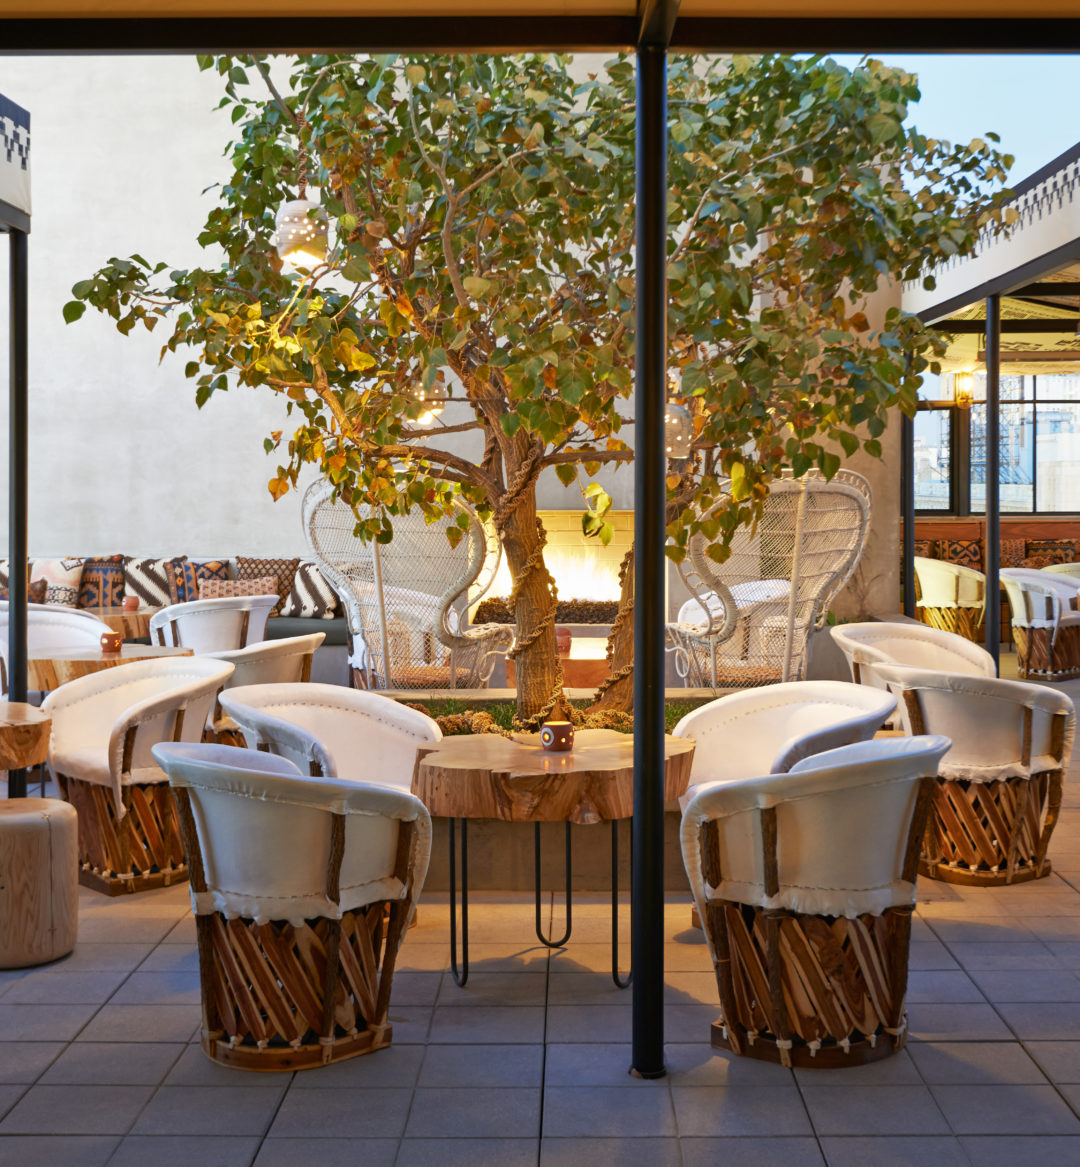 Patio with tables and chairs surrounding a tree